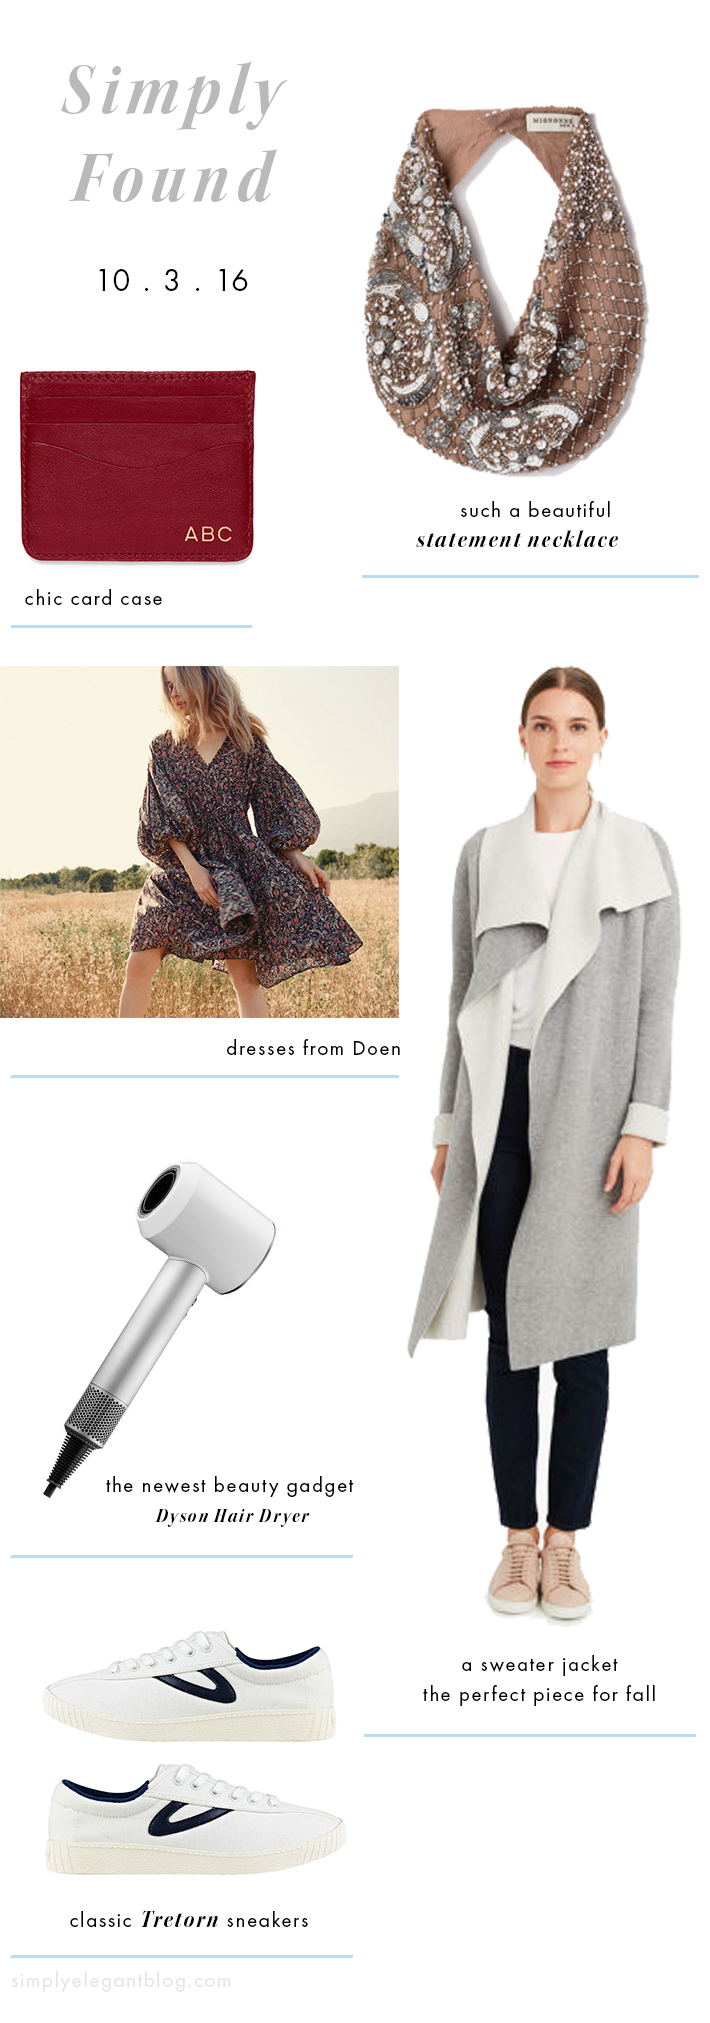 Simply Found 15 - Shopping Wish List - Doen Dress, Cuyana Card Case, Club Monaco Jacket and more.